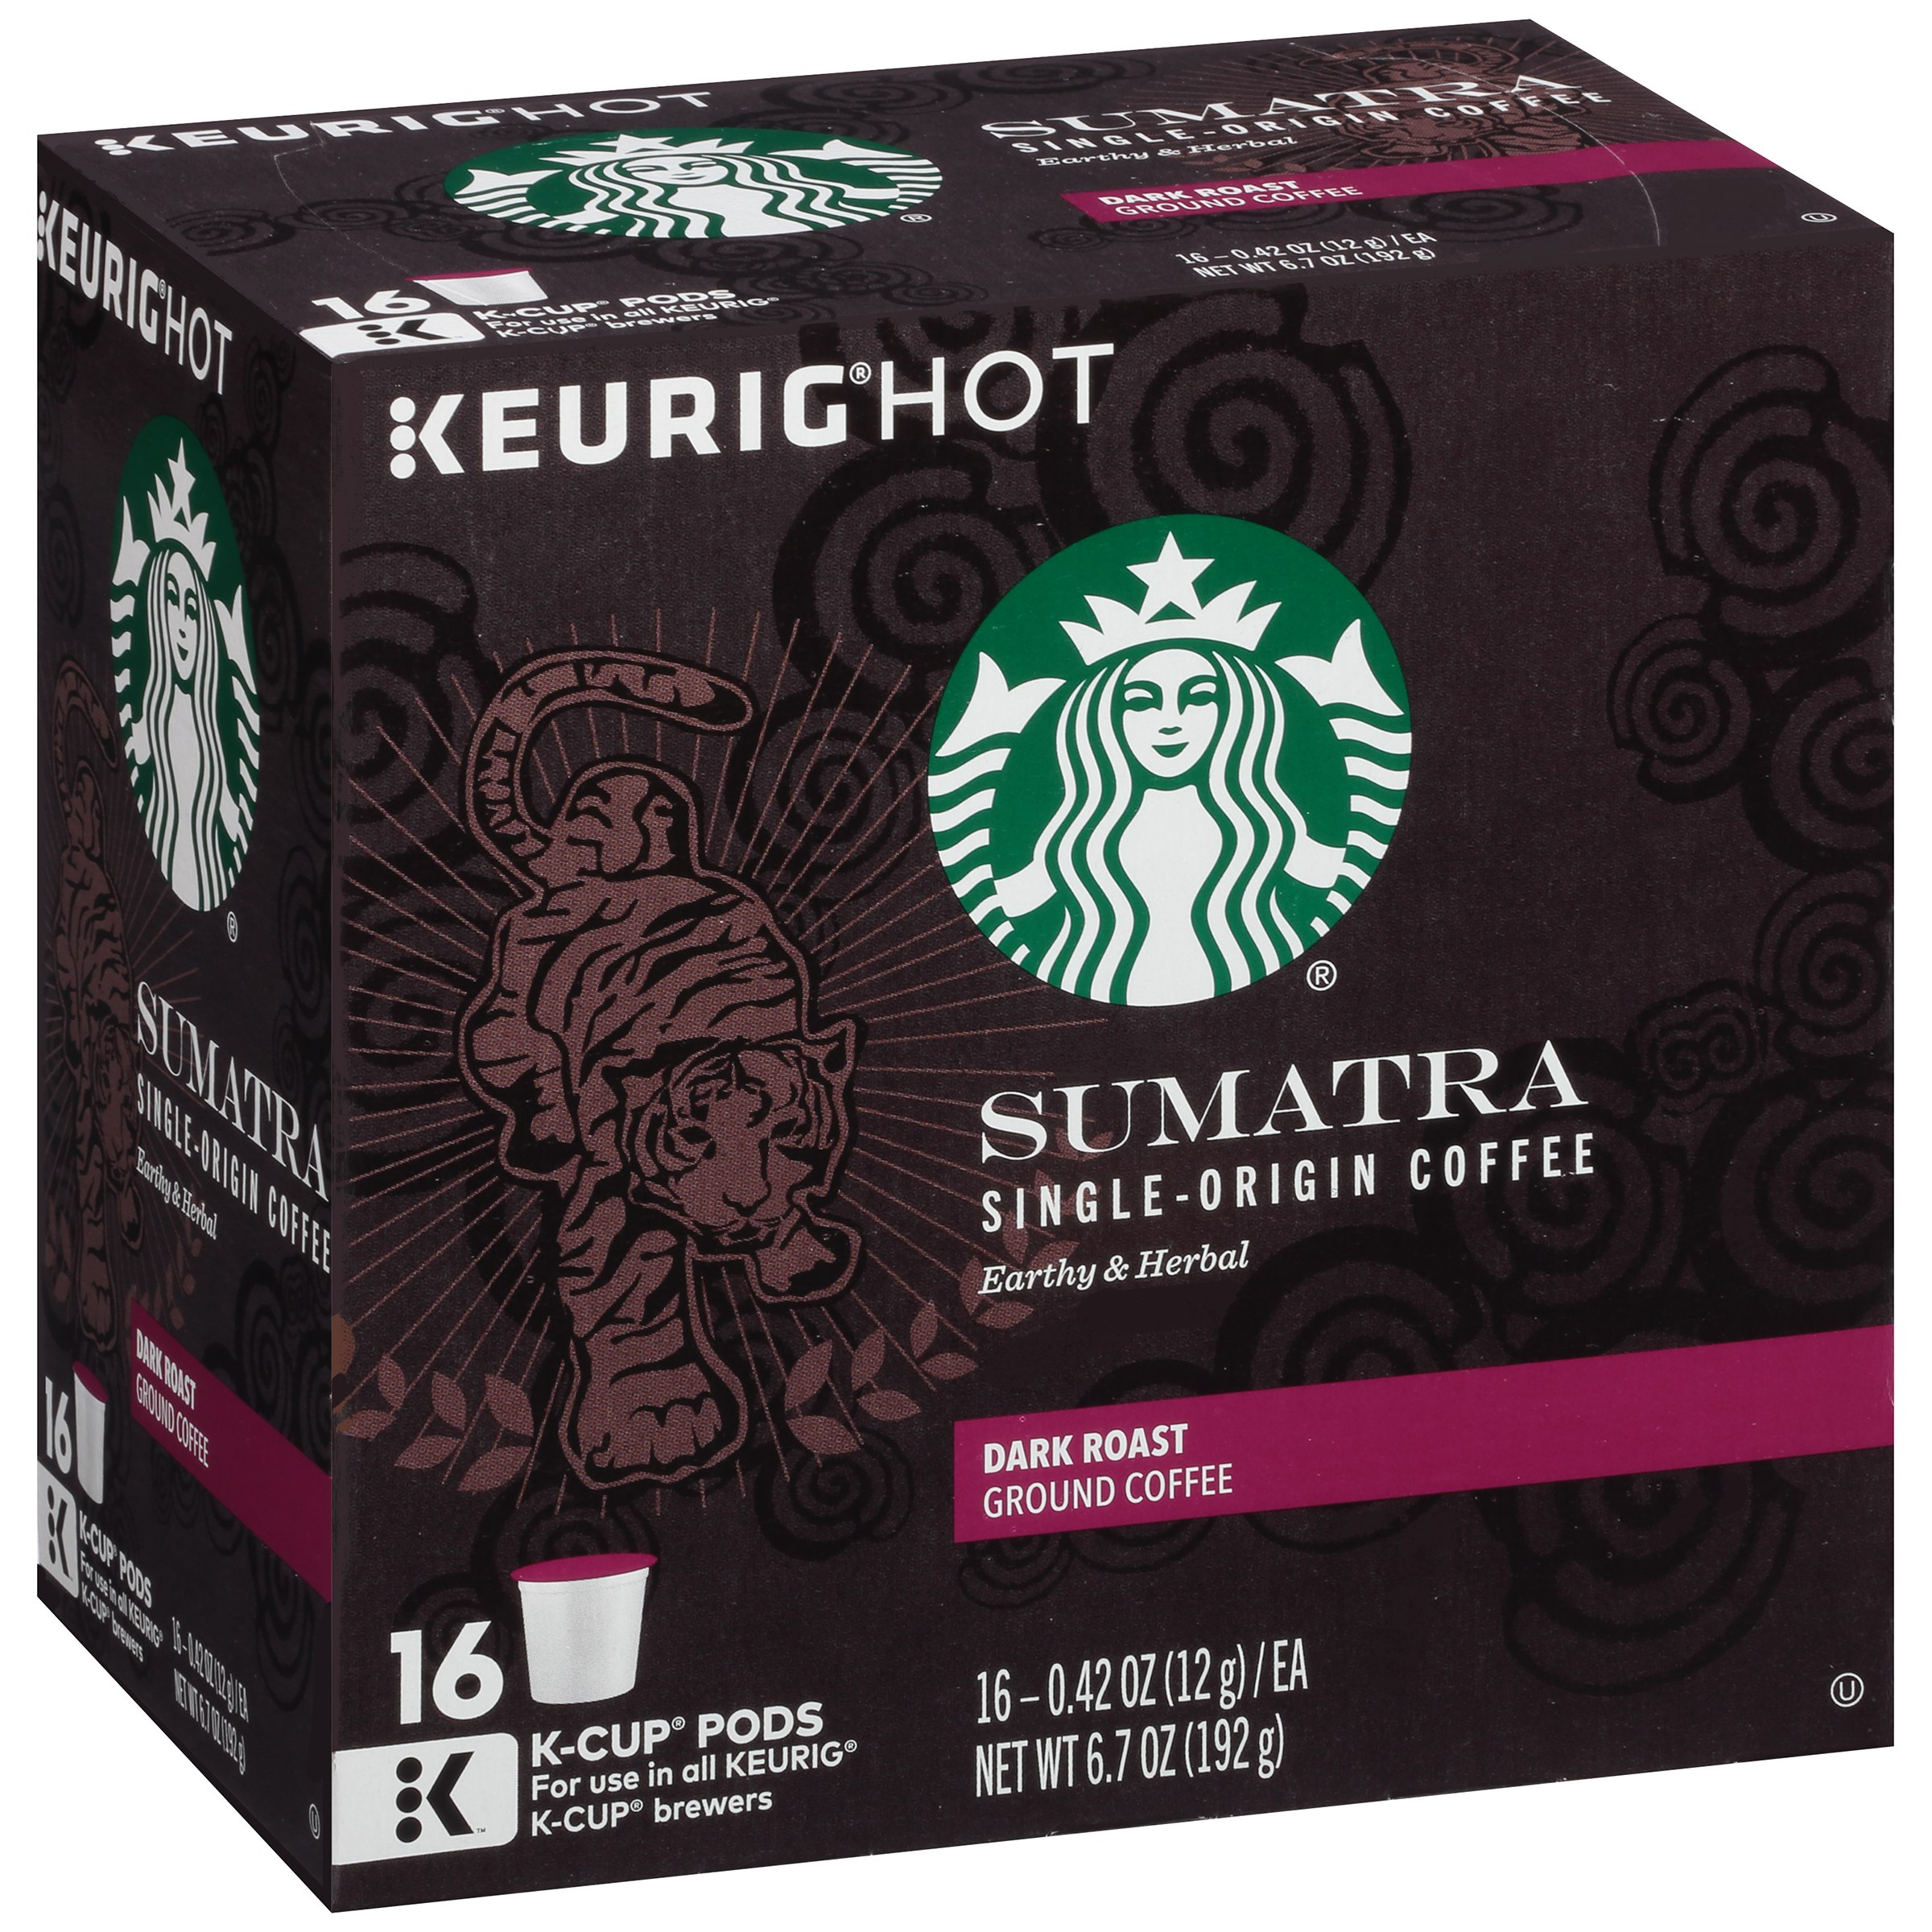 Keurig Hot Starbucks Sumatra Dark Roast Ground Coffee, 0.42 oz, 16 count